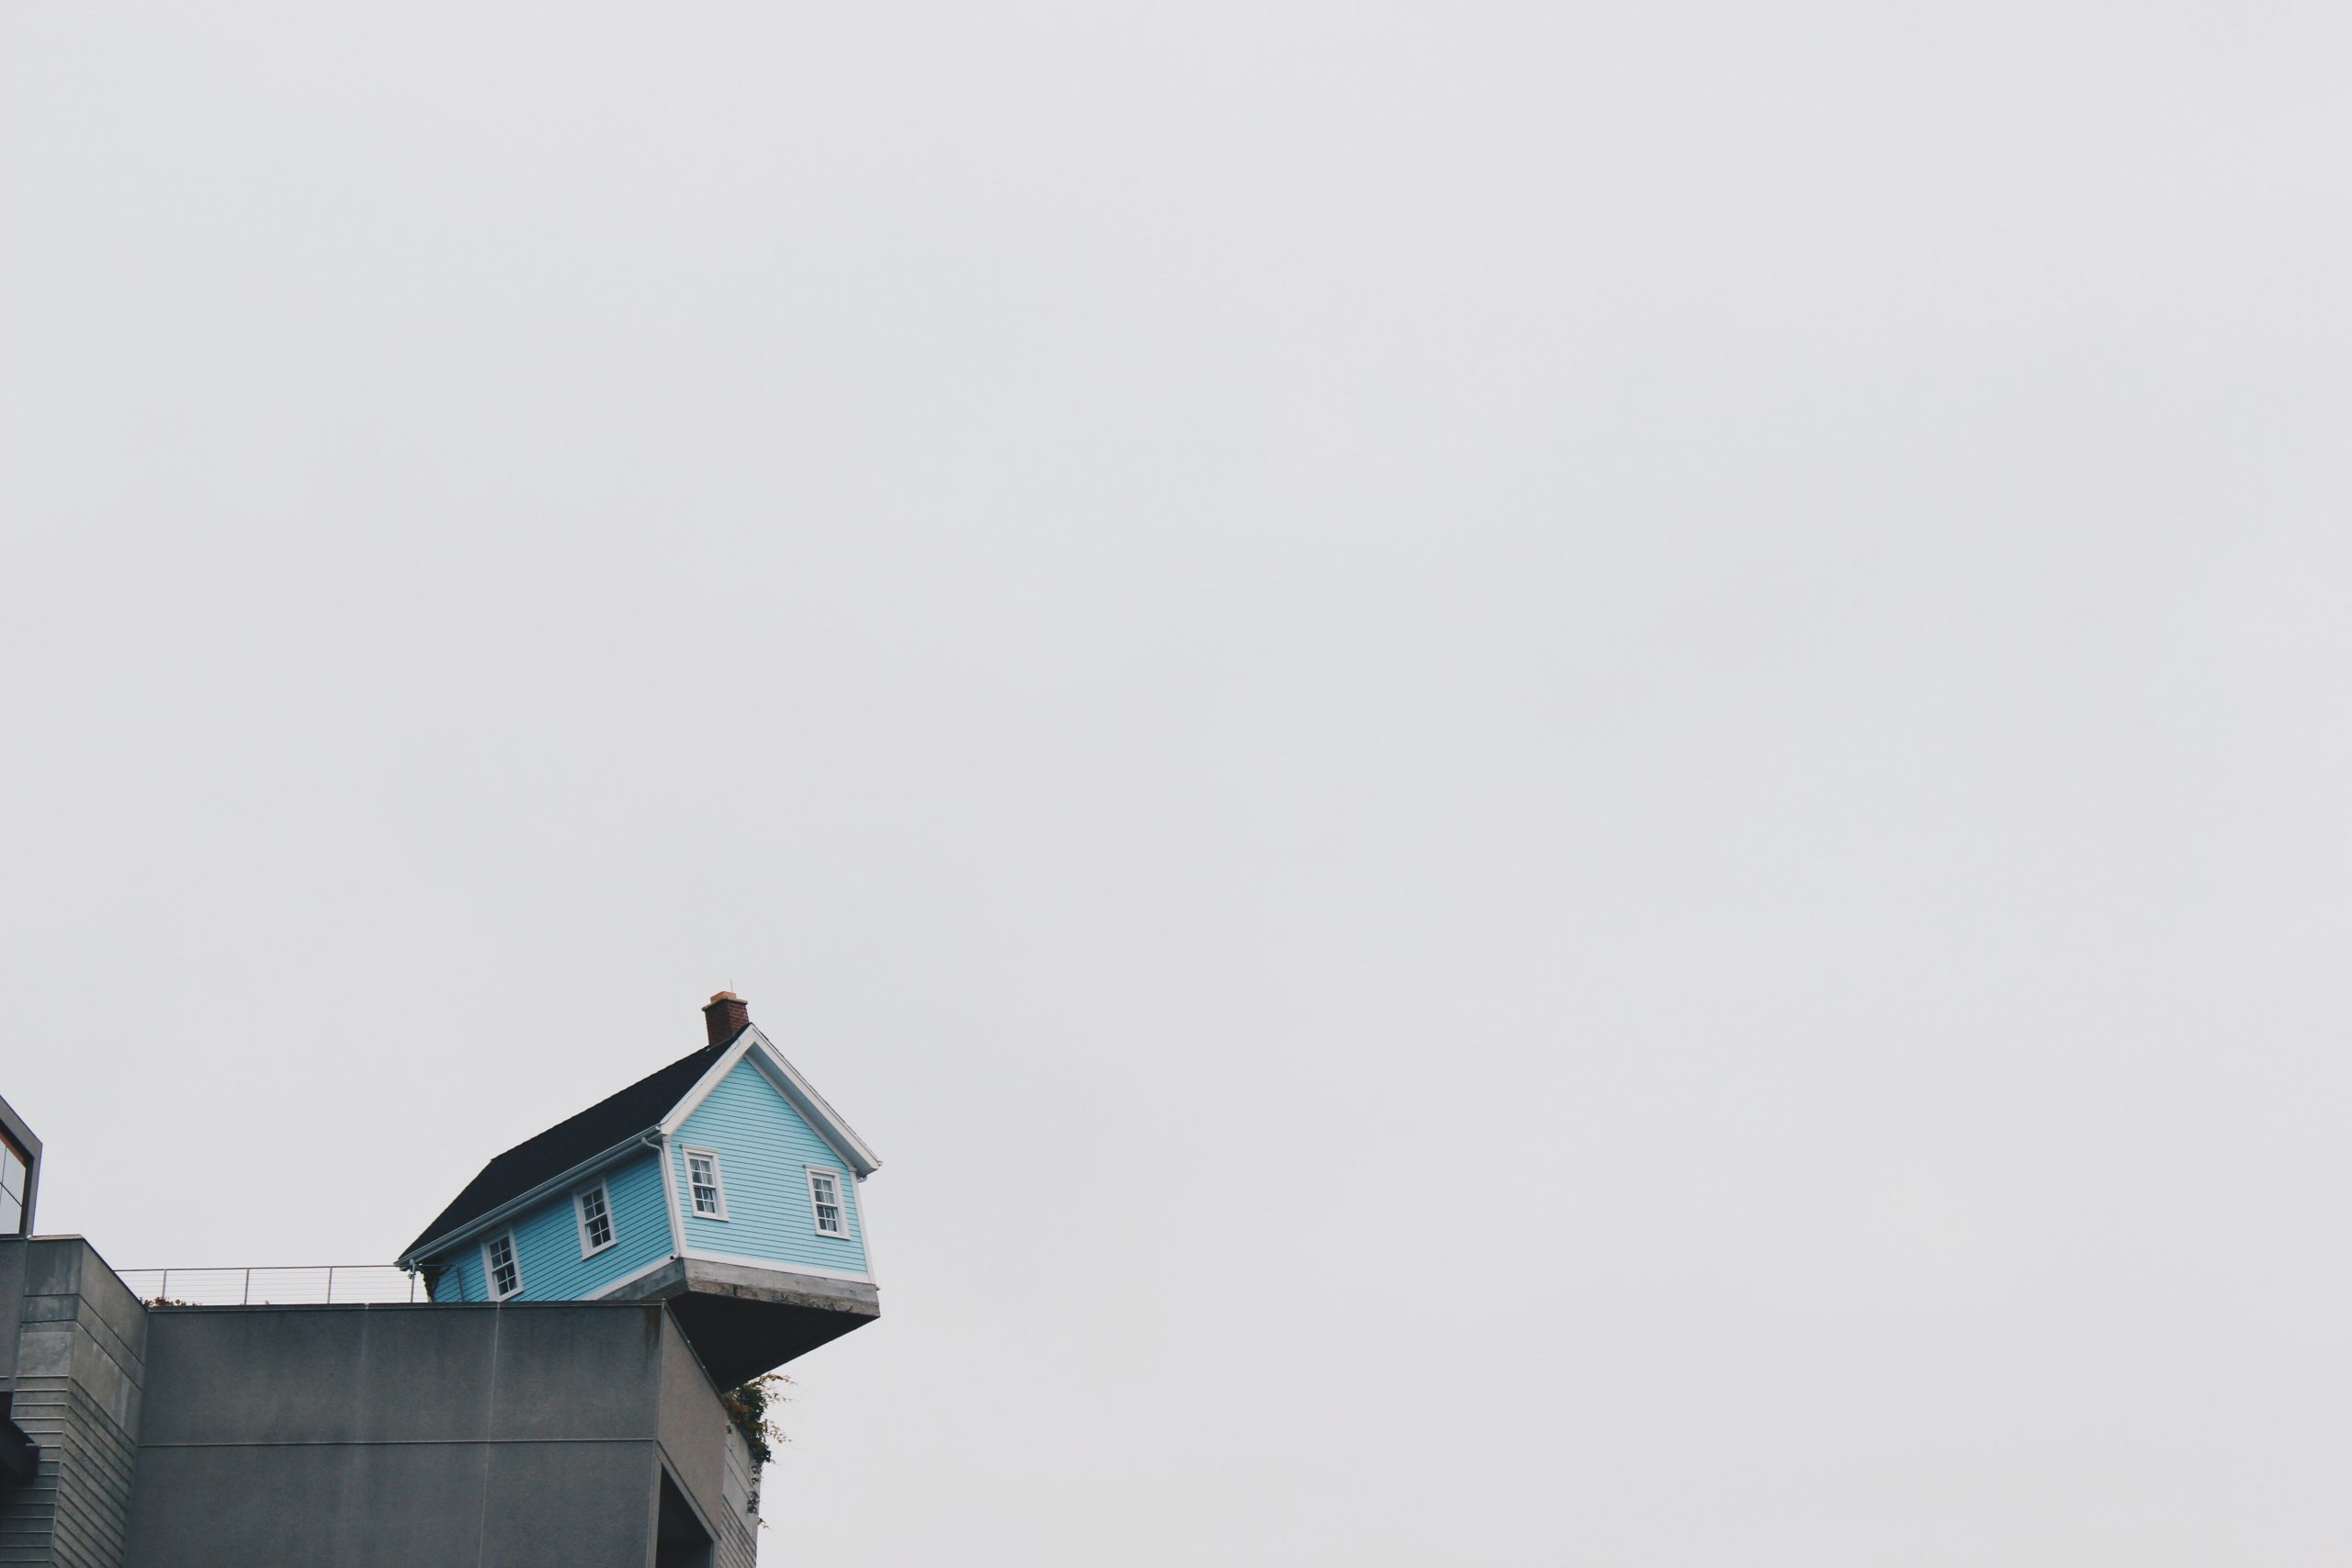 Photo of small blue house perched on edge of a cement dock.